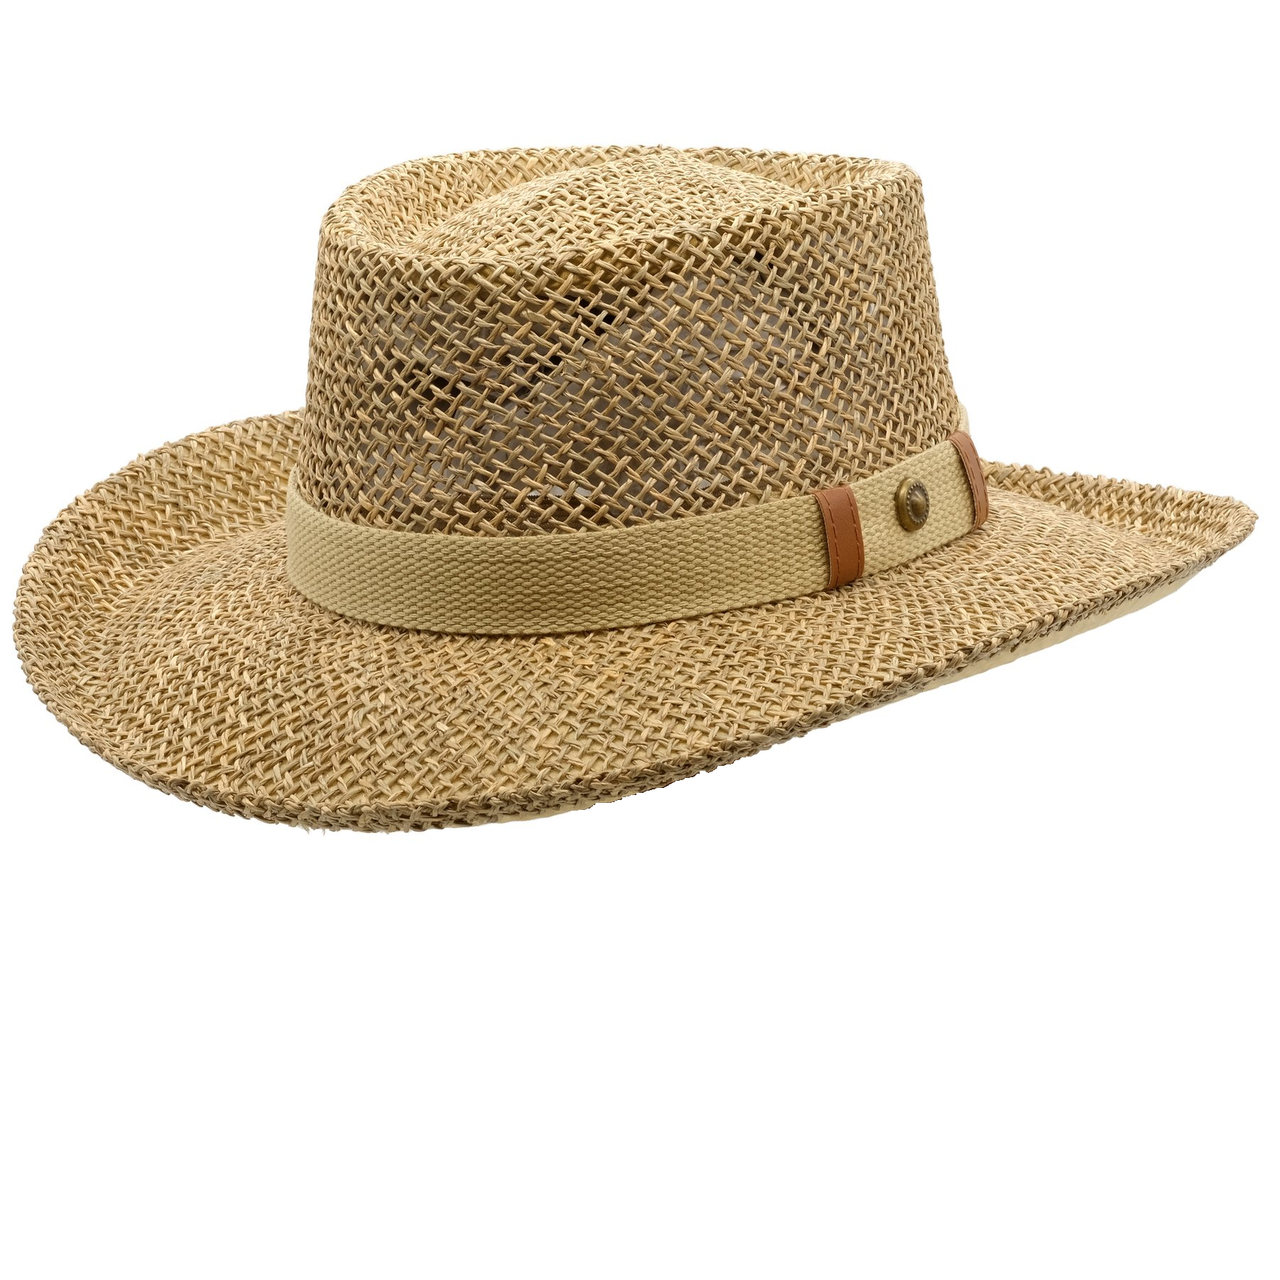 Avenel Open Weave Seagrass Downunder Hat